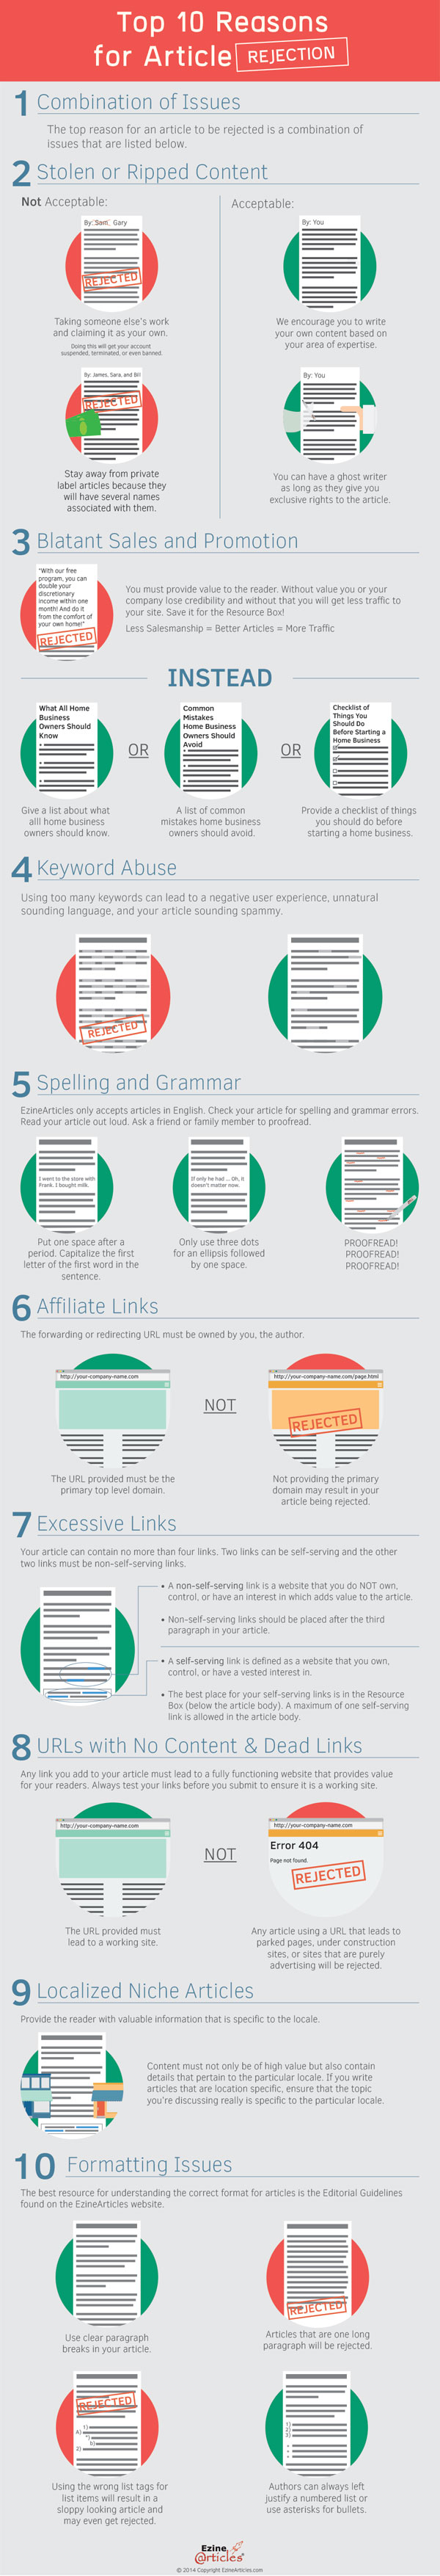 ezinearticles-top-10-reasons-for-article-rejection